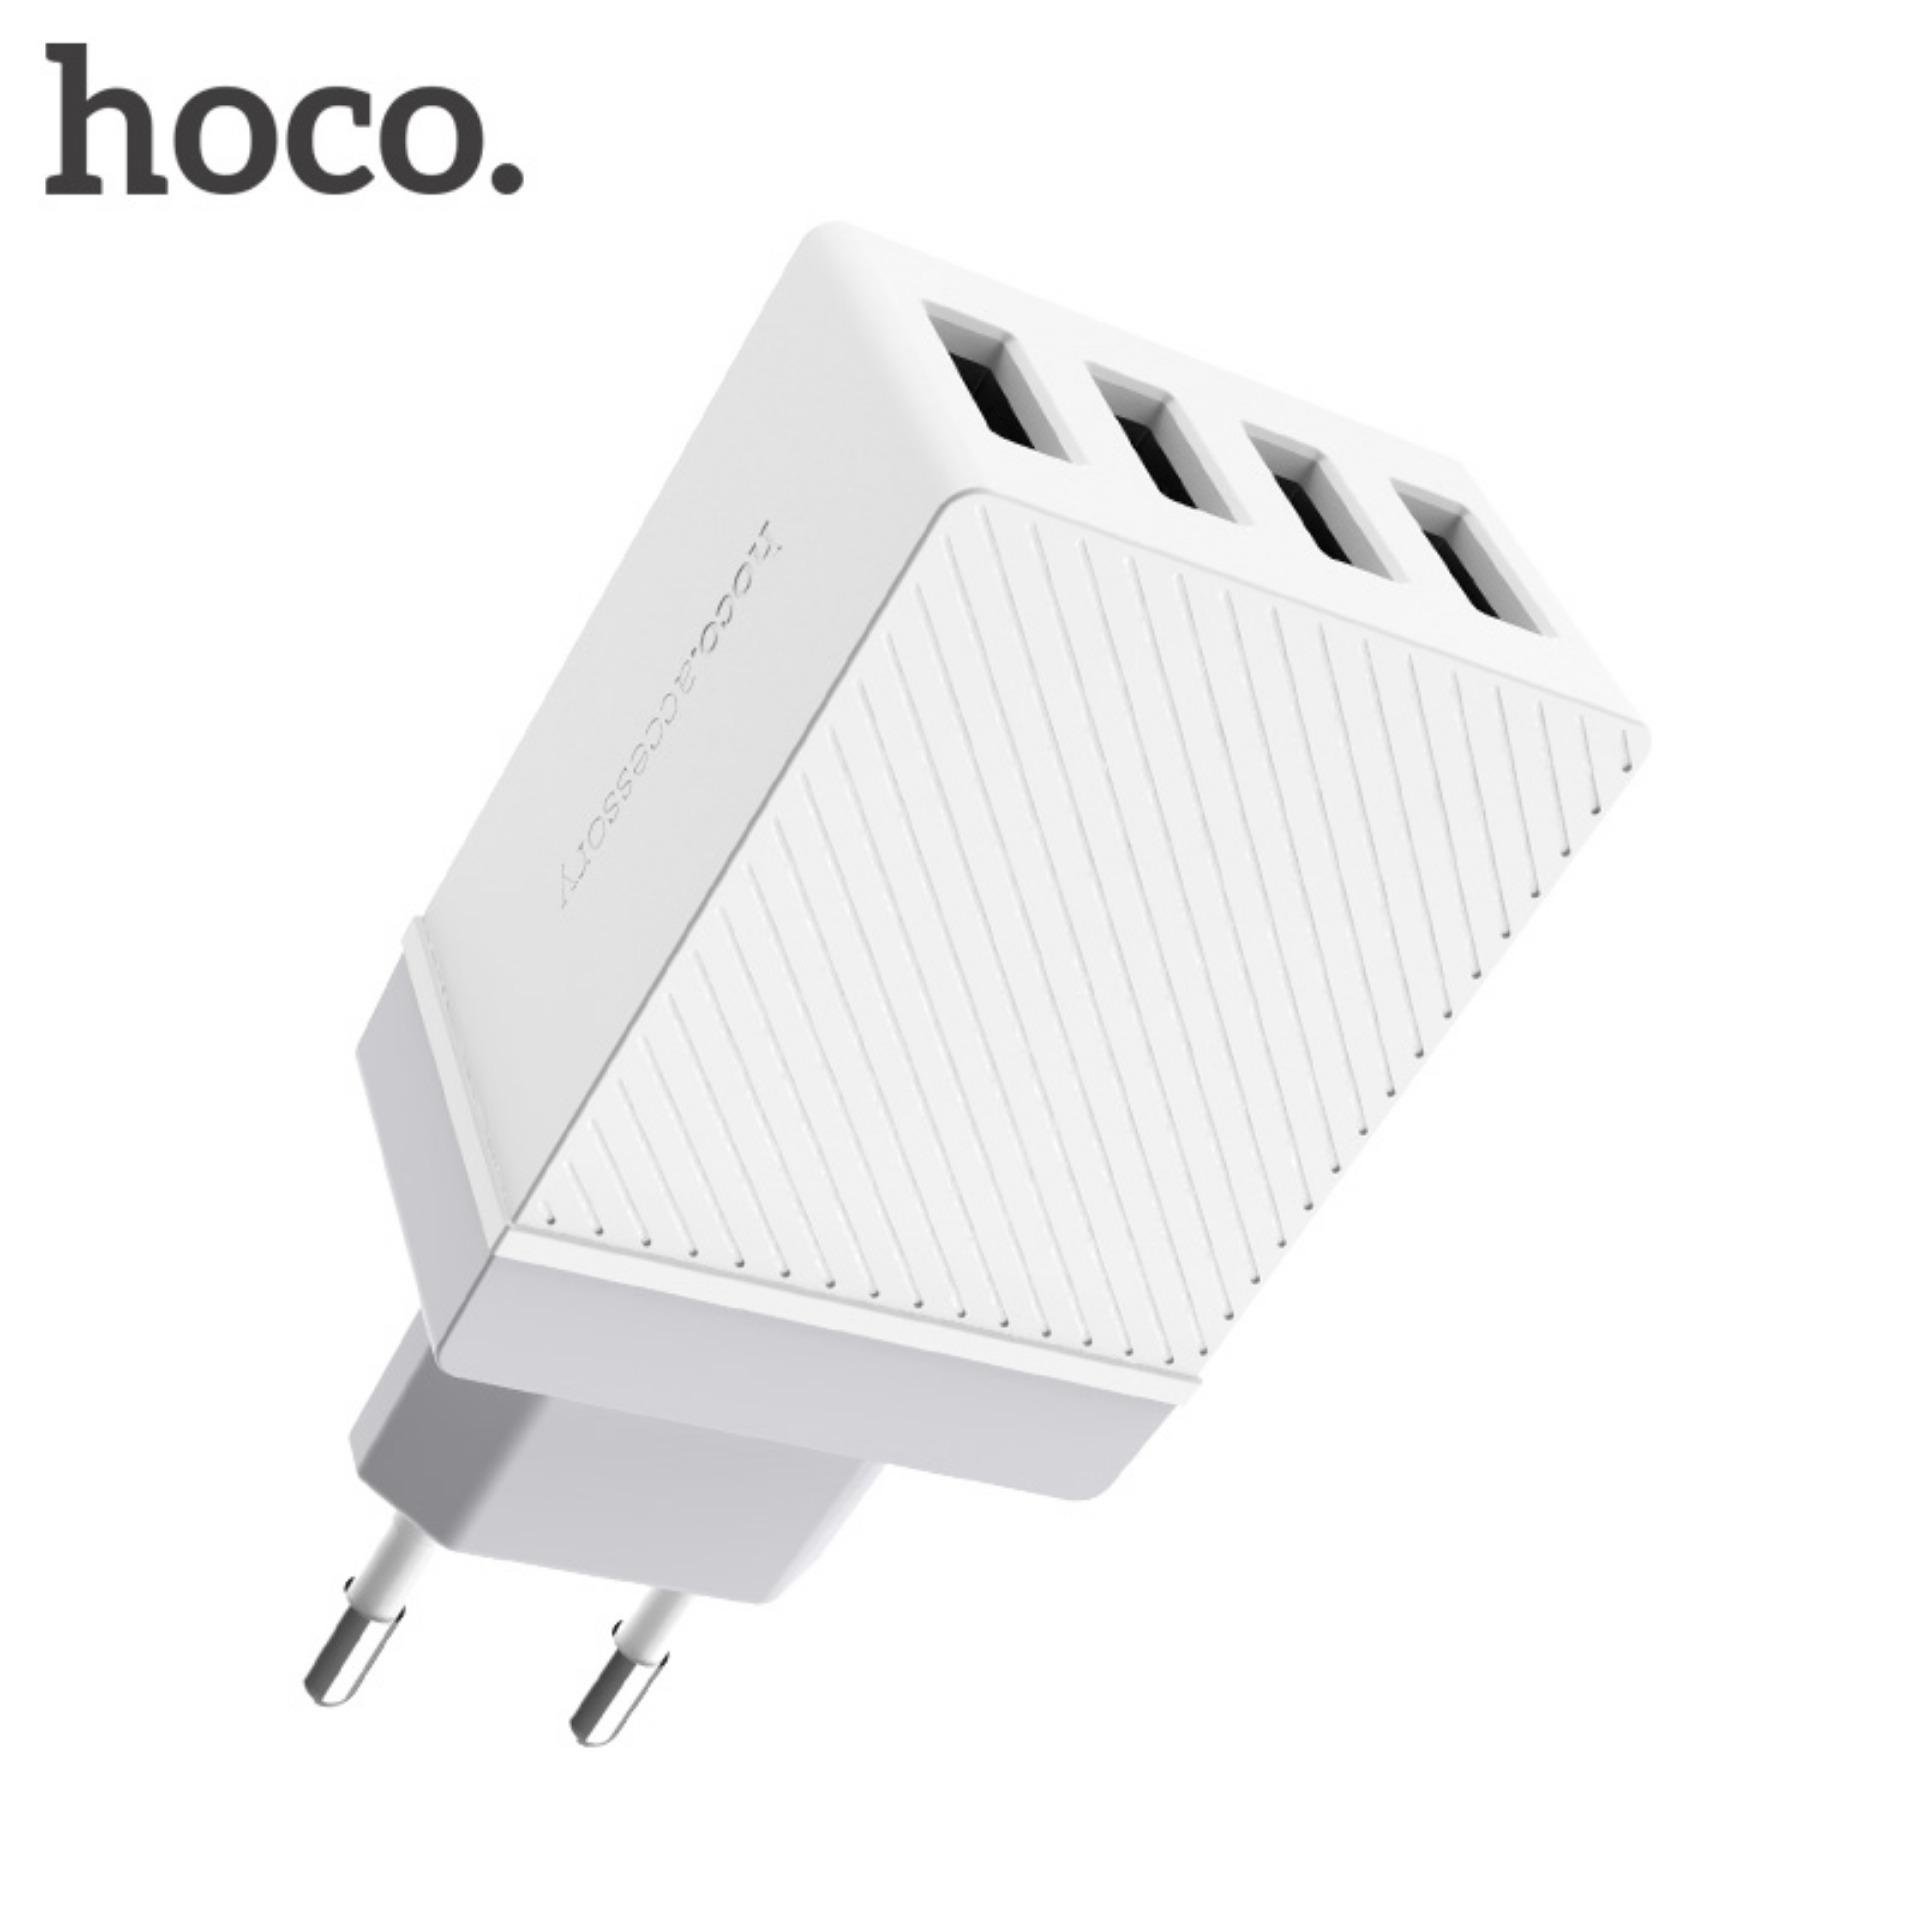 HOCO 5V 3.4A Universal 4 Port USB Charger EU UK US Plug Adaptor Cerdas untuk iPad Apple iPhone Samsung Xiaomi 4 Port USB Putih